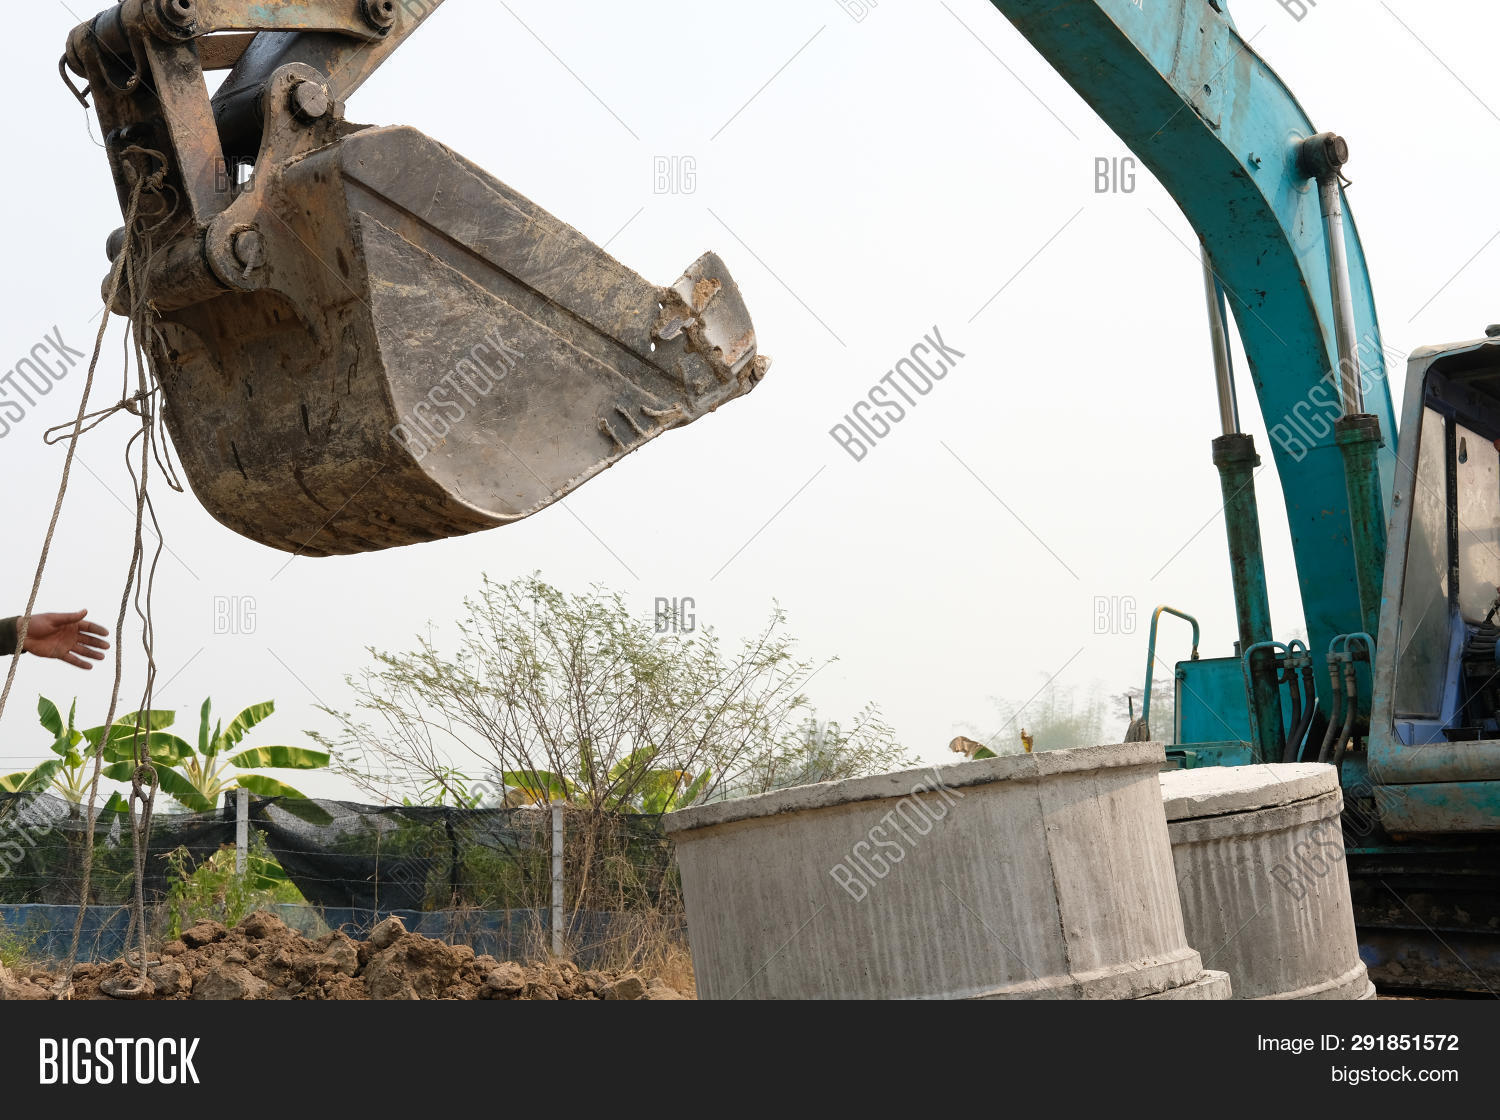 Excavator Backhoe Image & Photo (Free Trial) | Bigstock